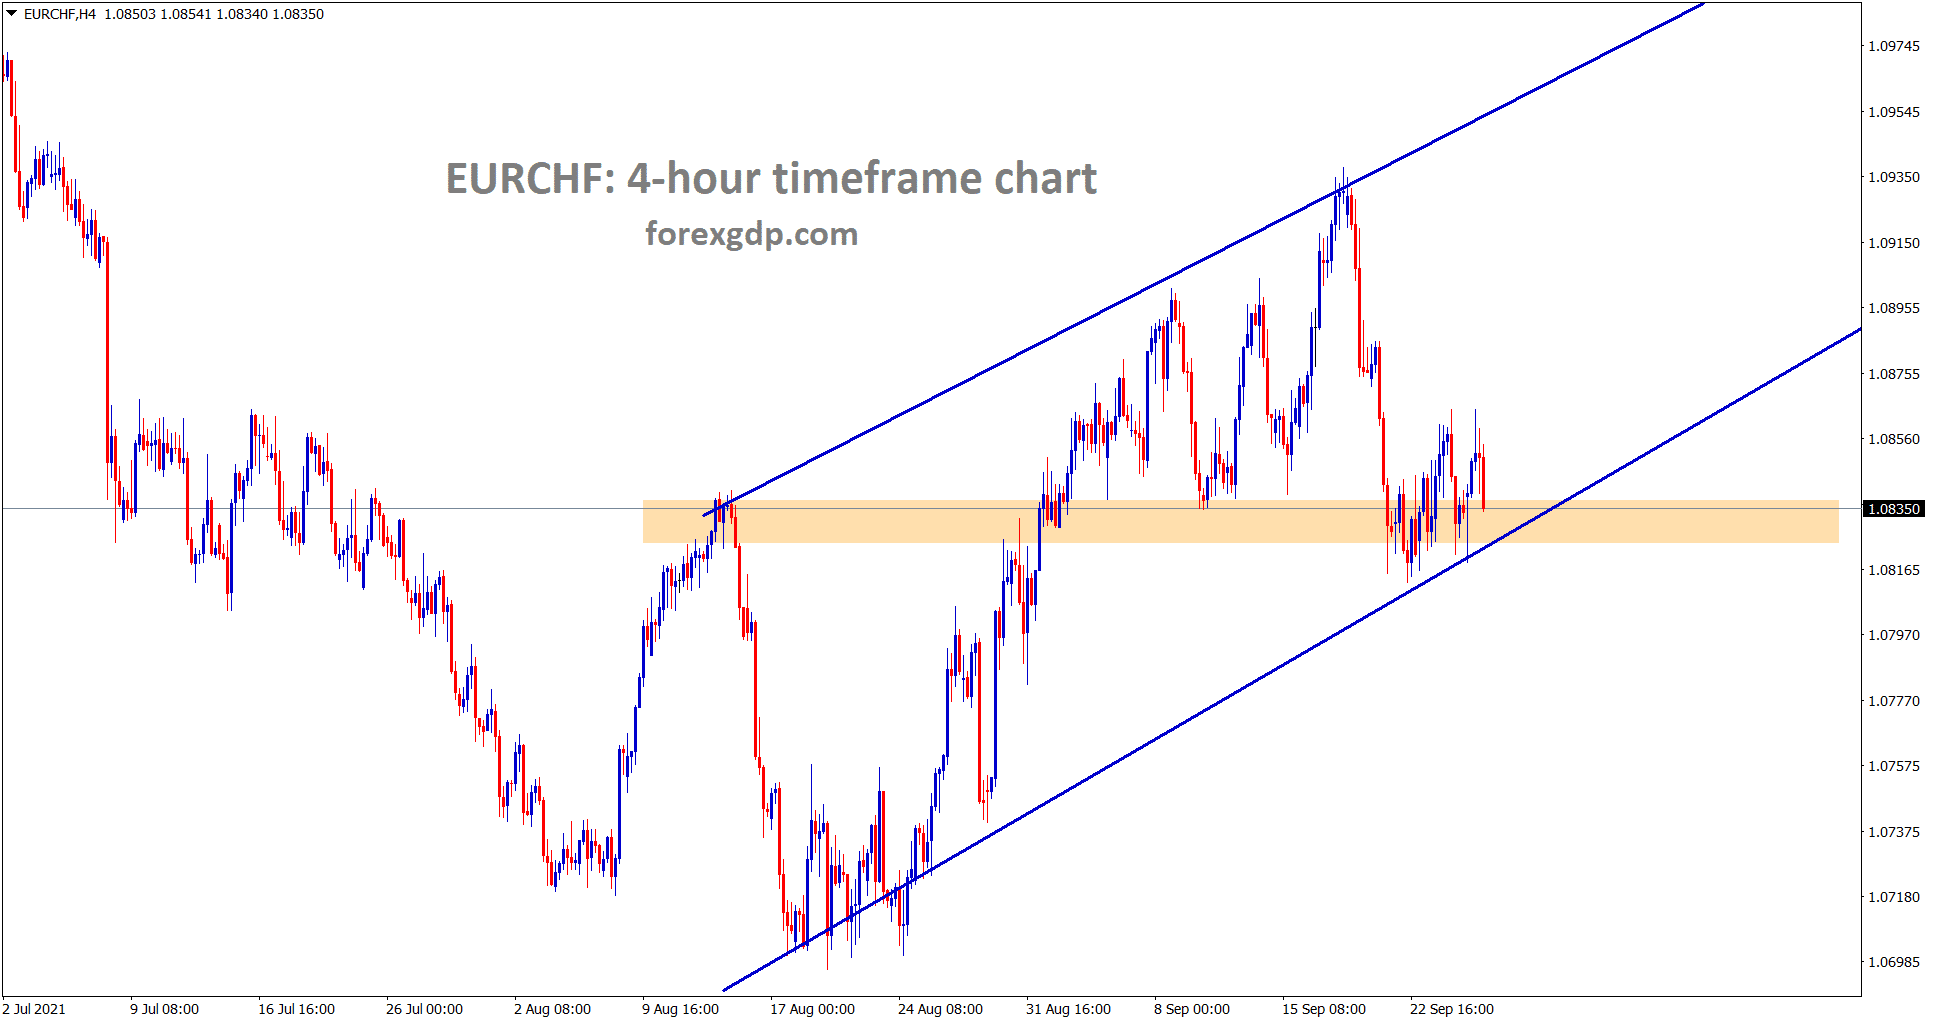 EURCHF is rebounding from the horizontal support and the higher low area of the uptrend line